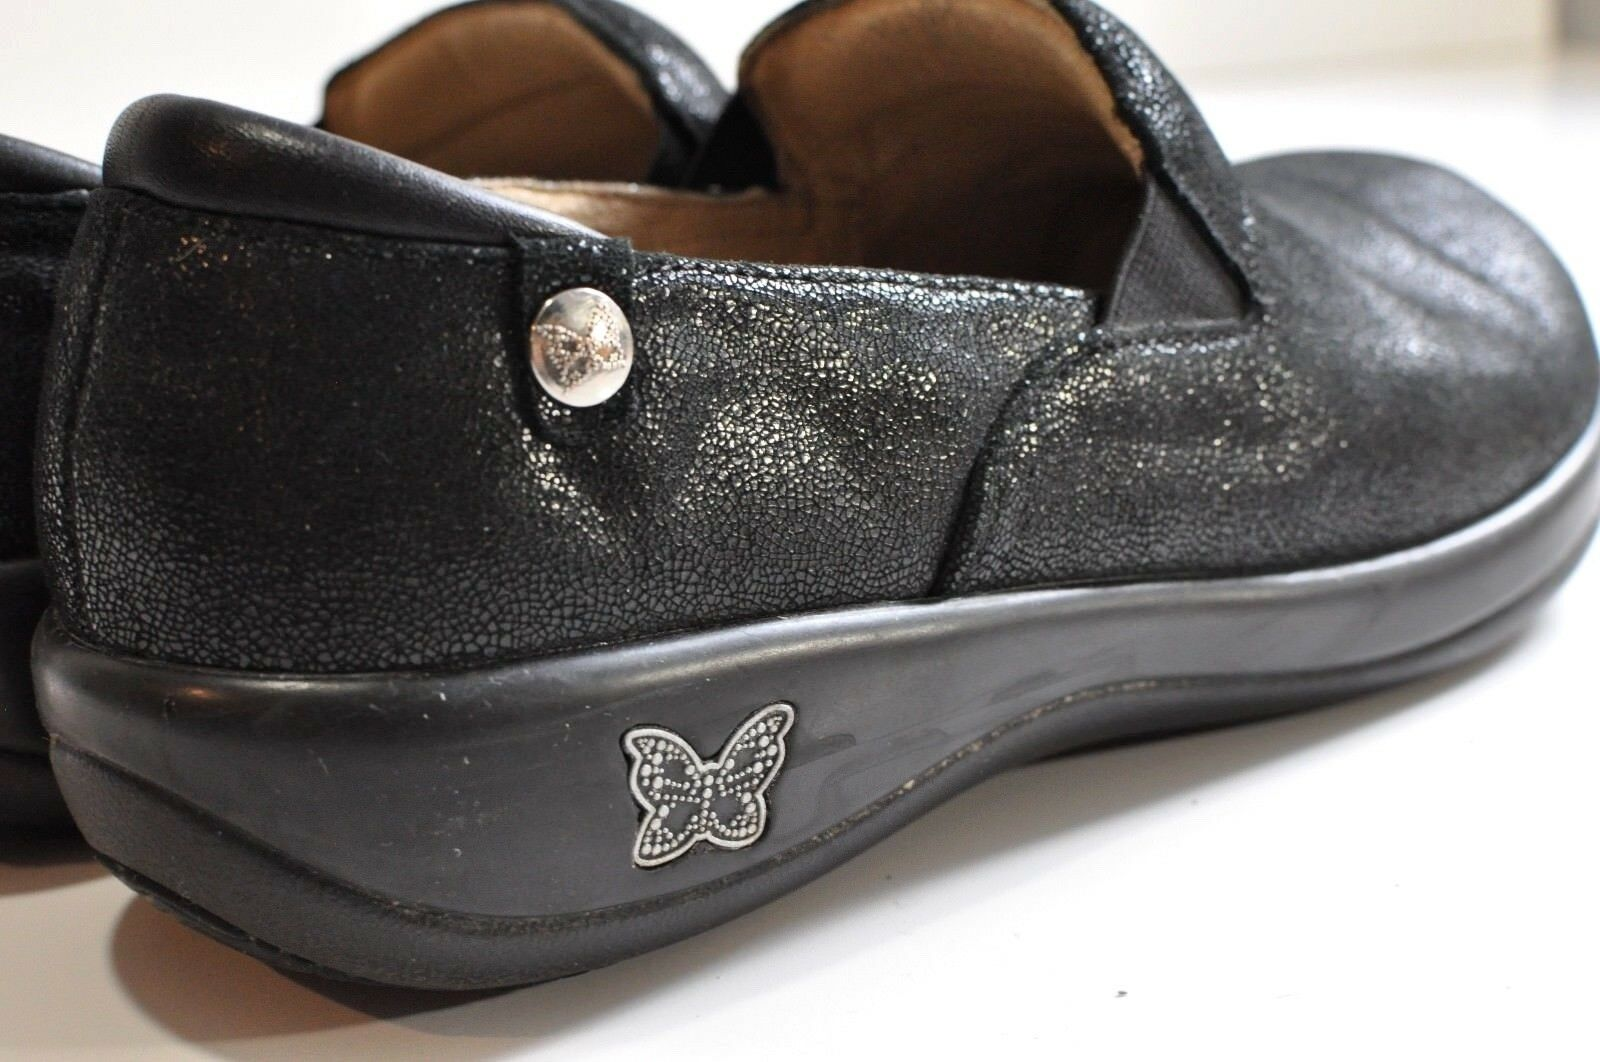 Alegria by PG Lite femmes slip on clogs Taille 39